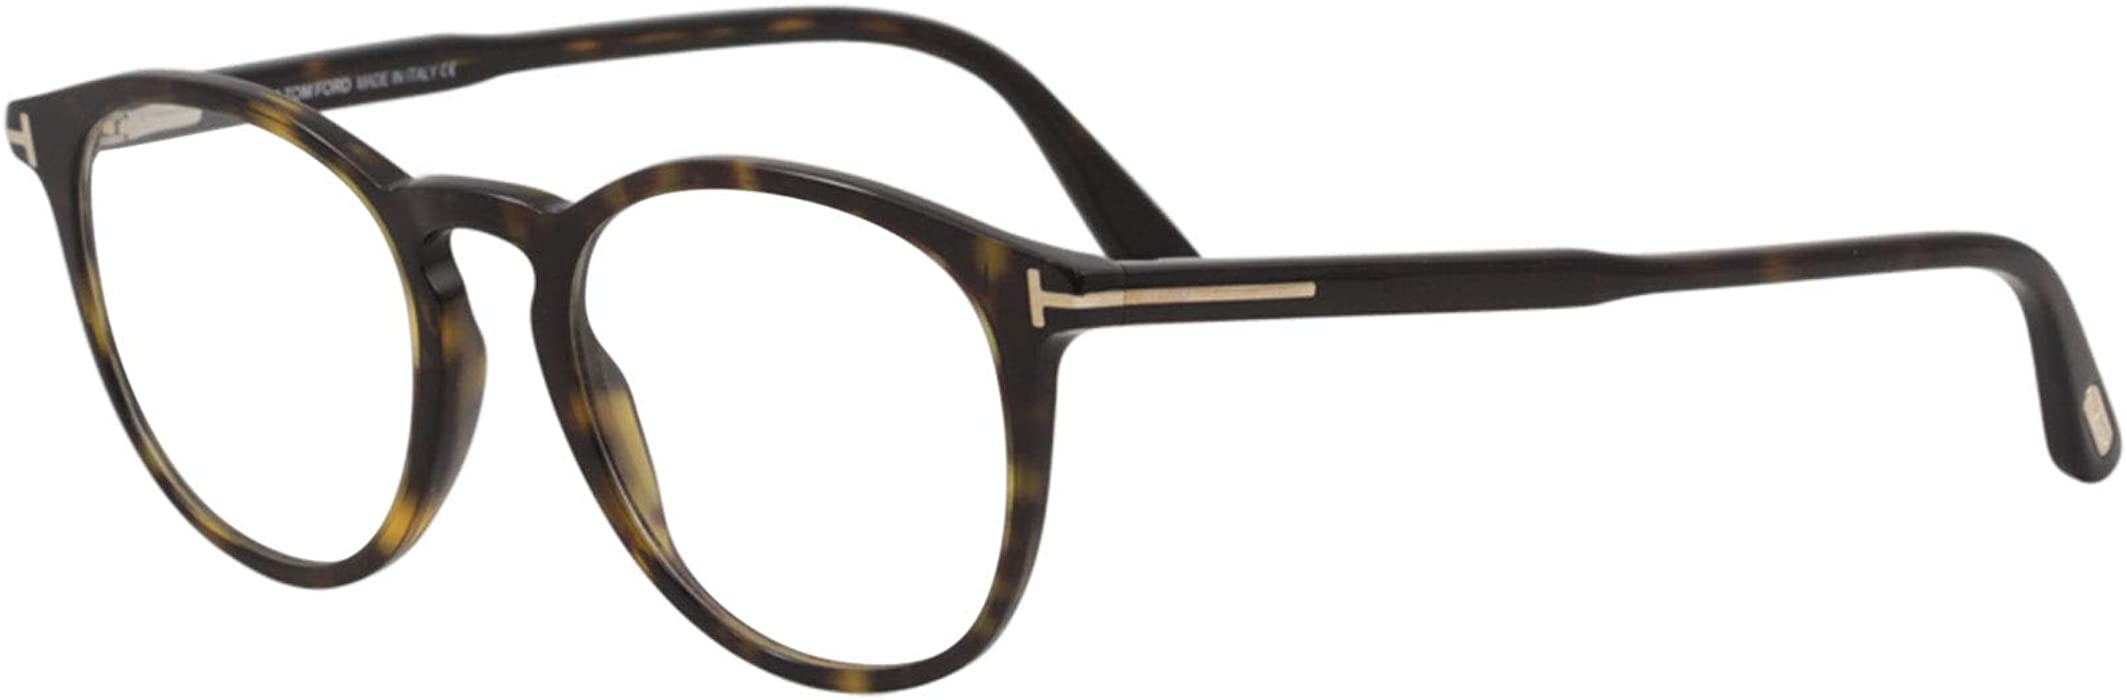 5fa8eded62 Tom Ford - FT 5401